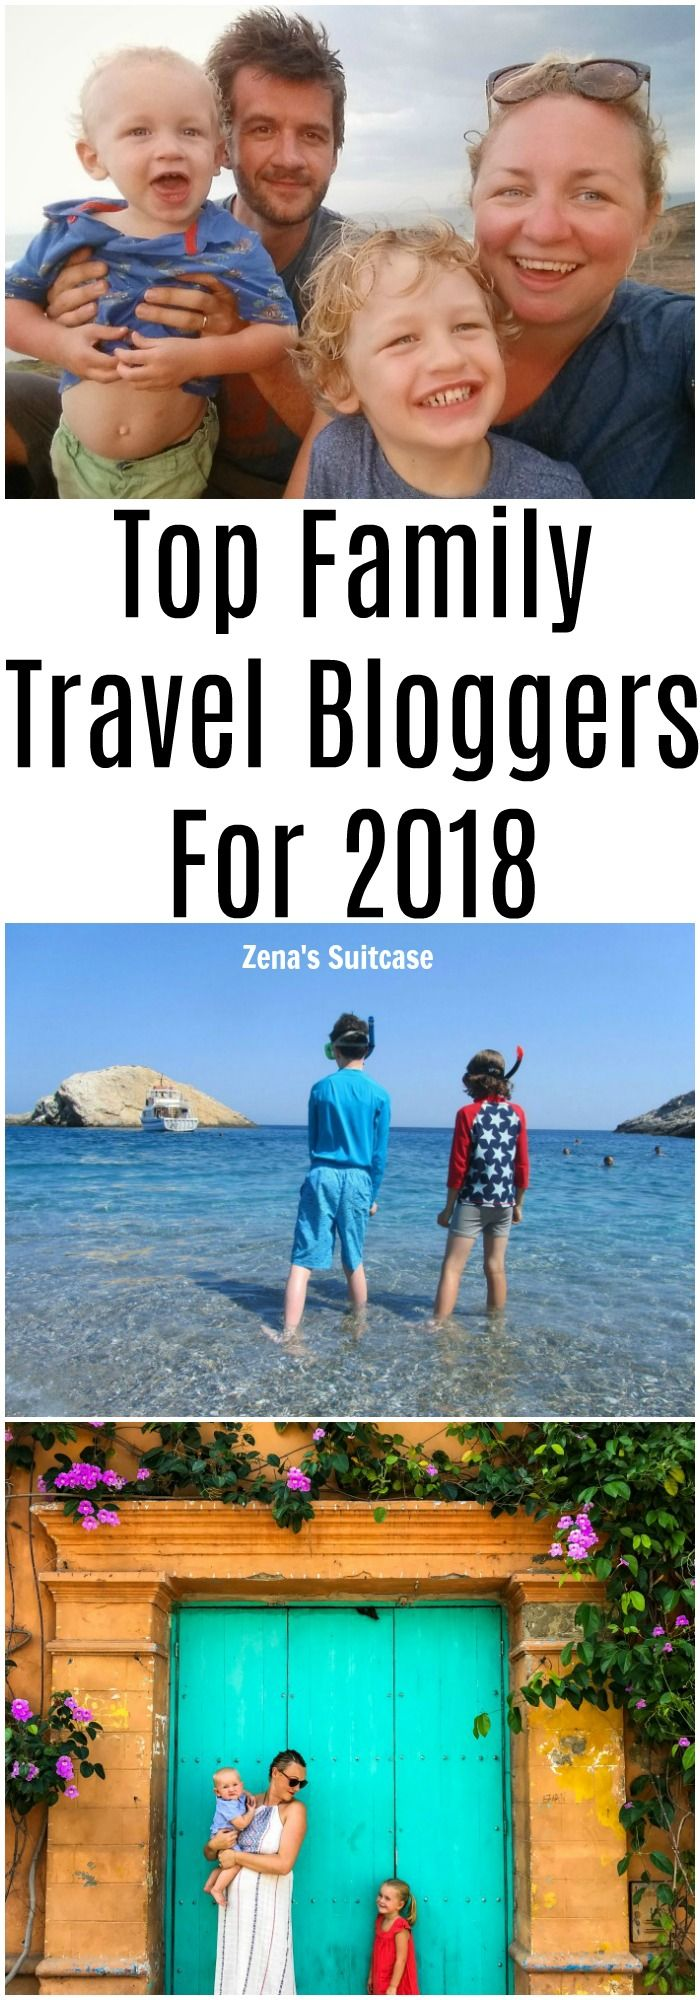 Top Family Travel Bloggers To Follow in 2018